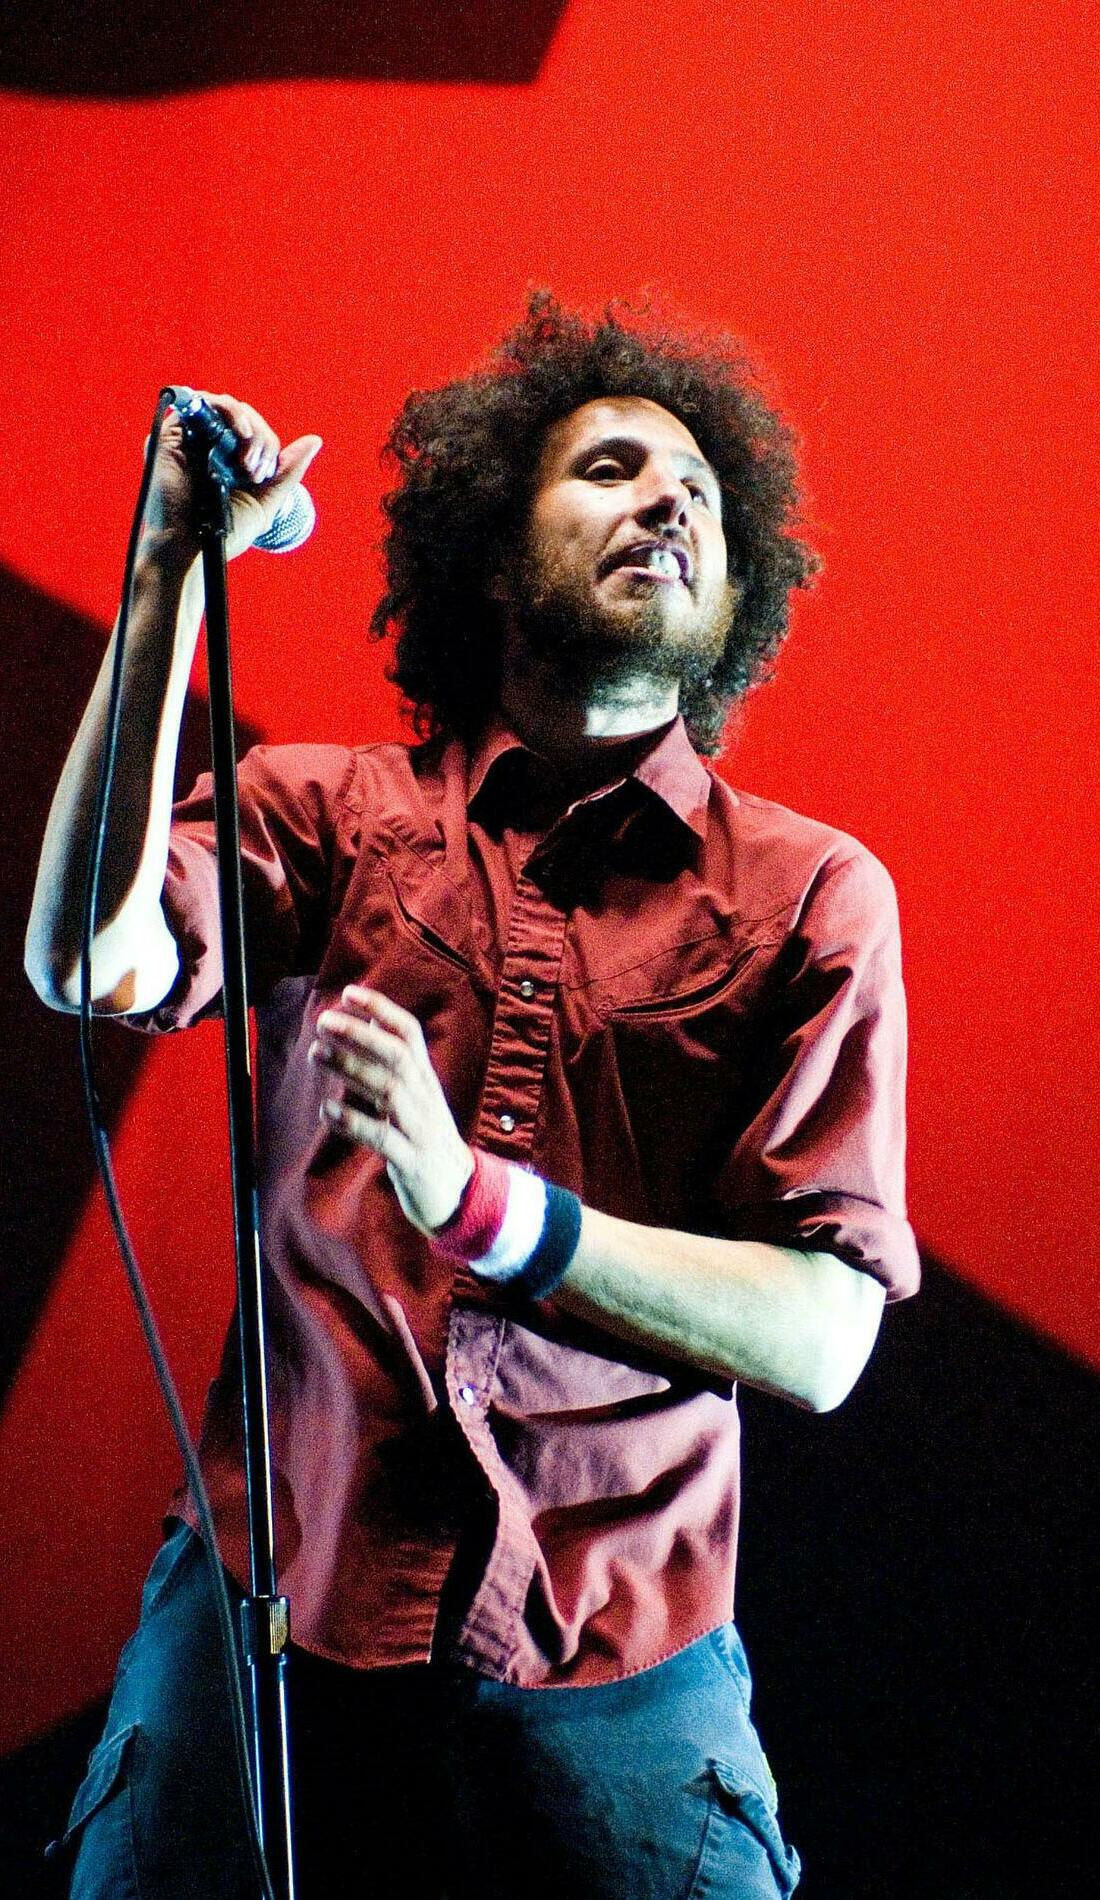 A Rage Against The Machine live event